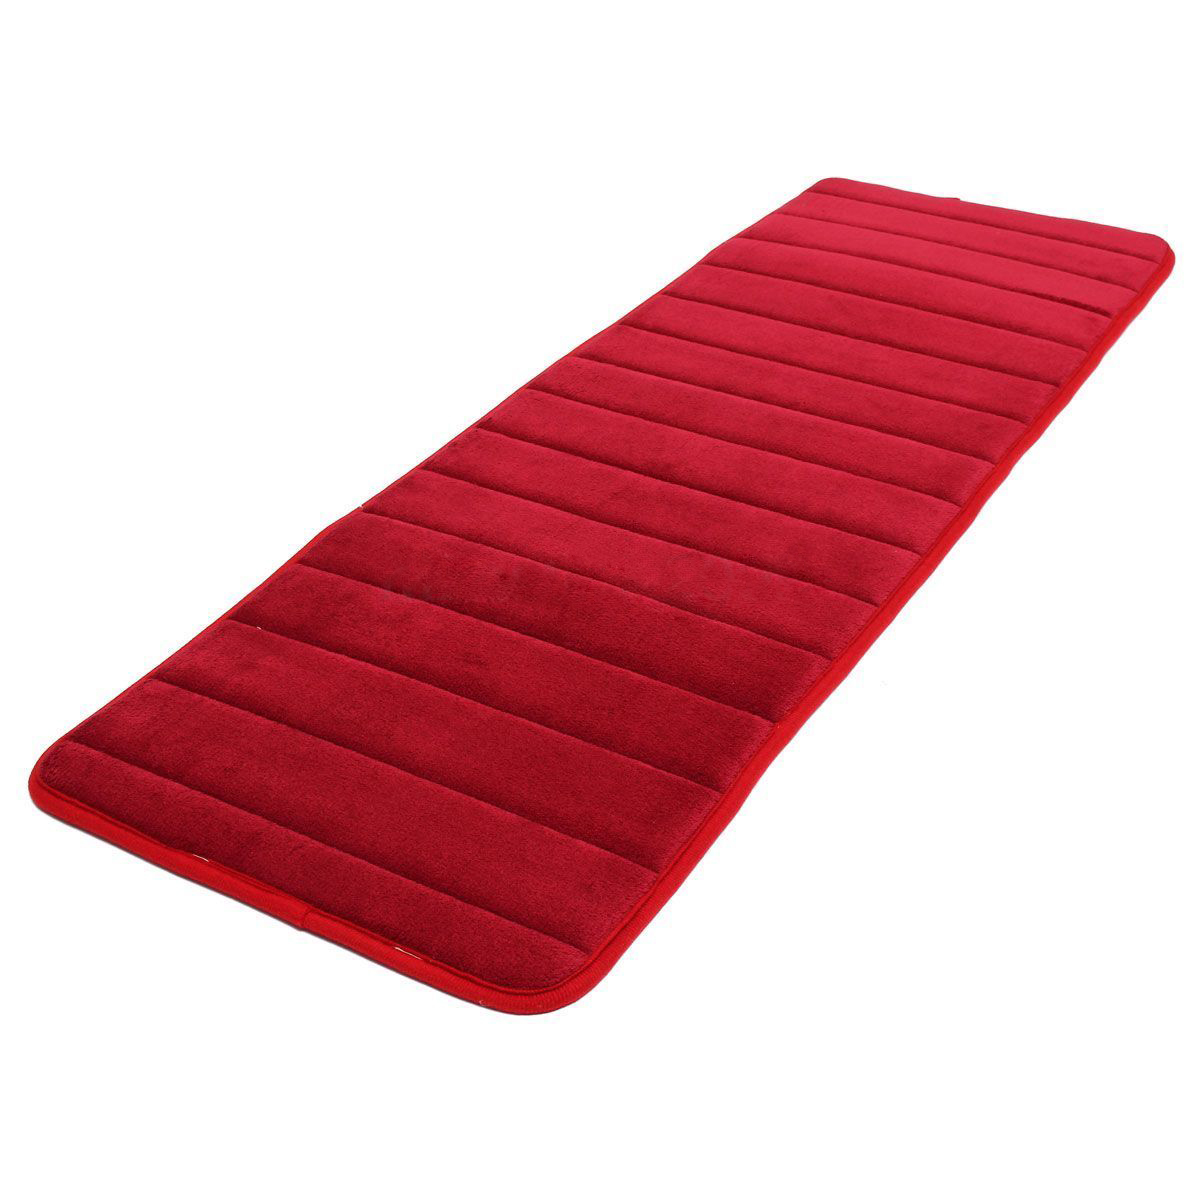 THZY 120x40cm Absorbent Nonslip Memory Foam Kitchen Bedroom Door Floor Mat Rug Carpet Date-red